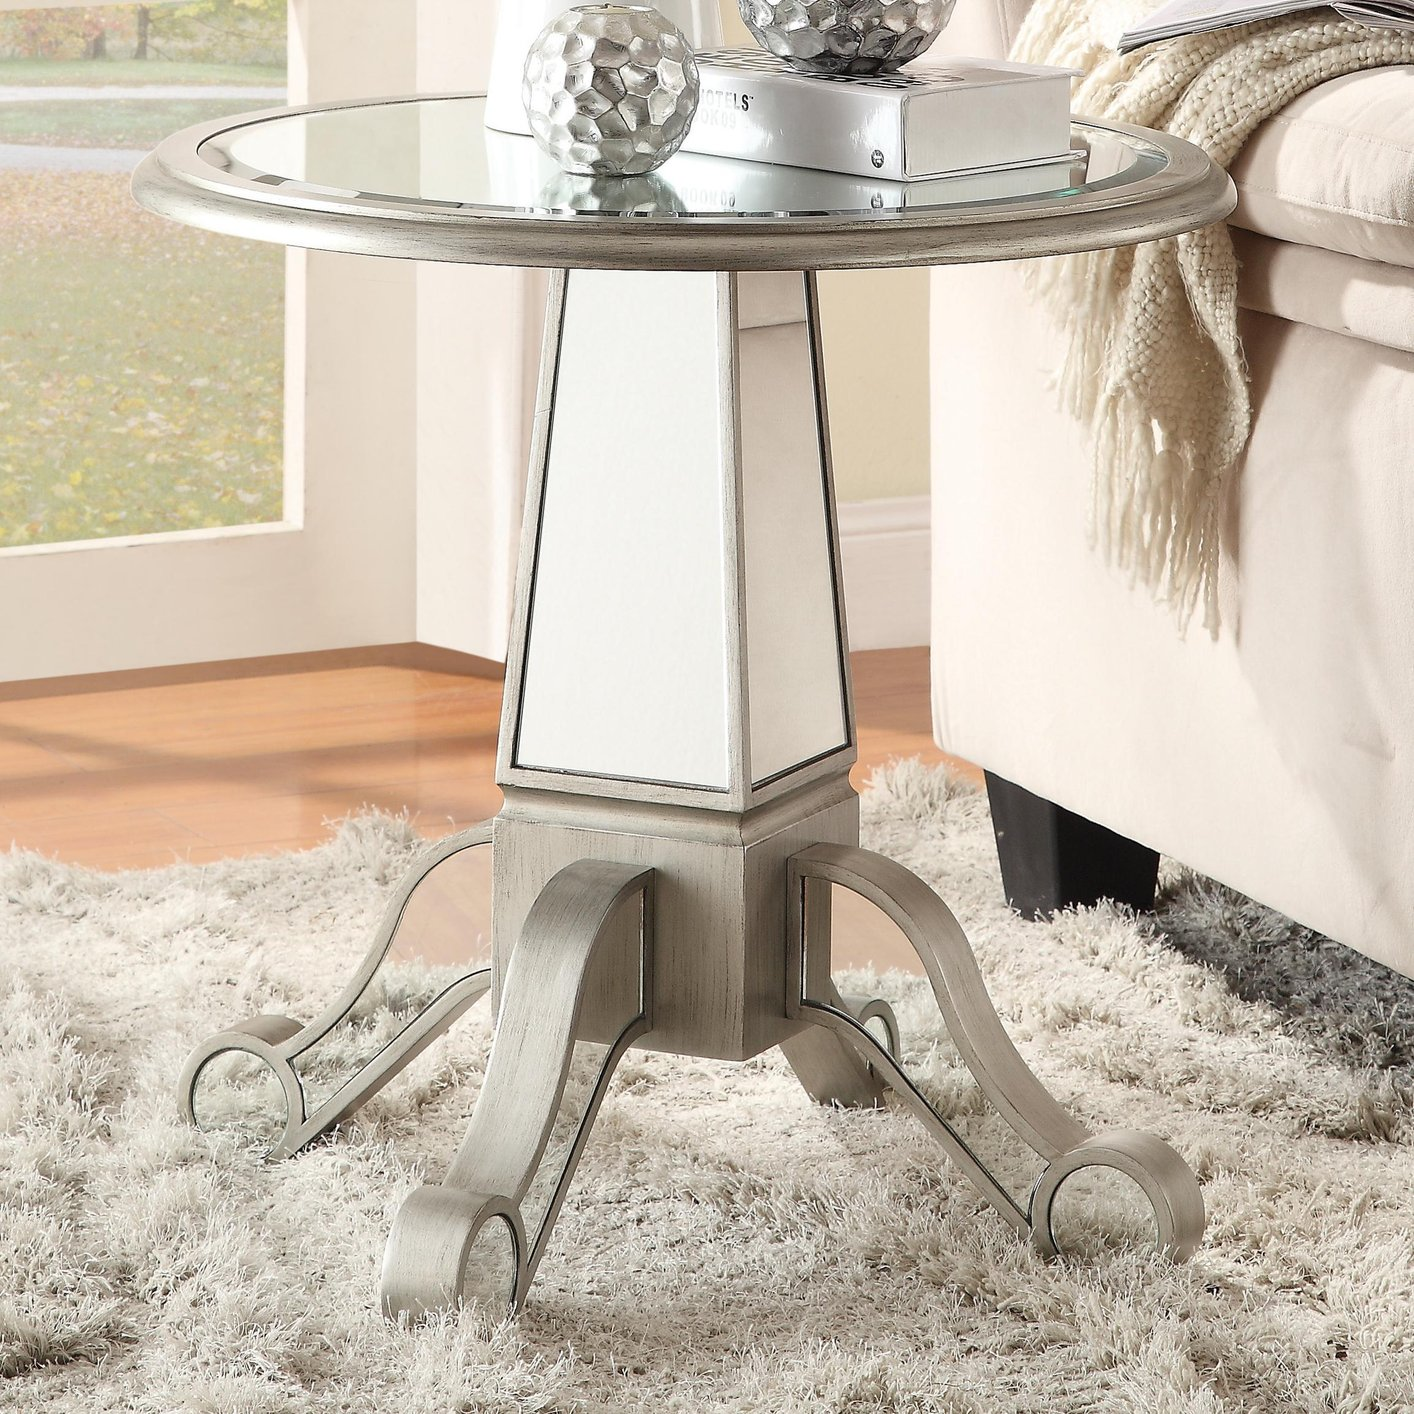 silver metal accent table steal sofa furniture los angeles glass base faux marble retro lamp white cloth napkins outdoor chairs with folding sides garden small tables brown living